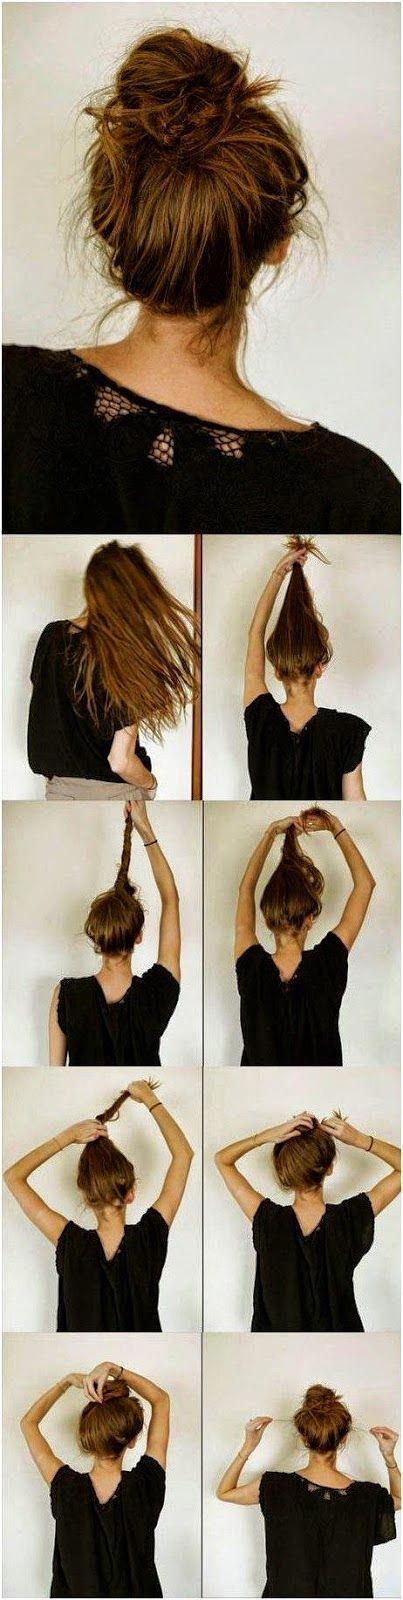 5 Easy Messy Buns For Long Hair Tutorial #Easyhairstyles